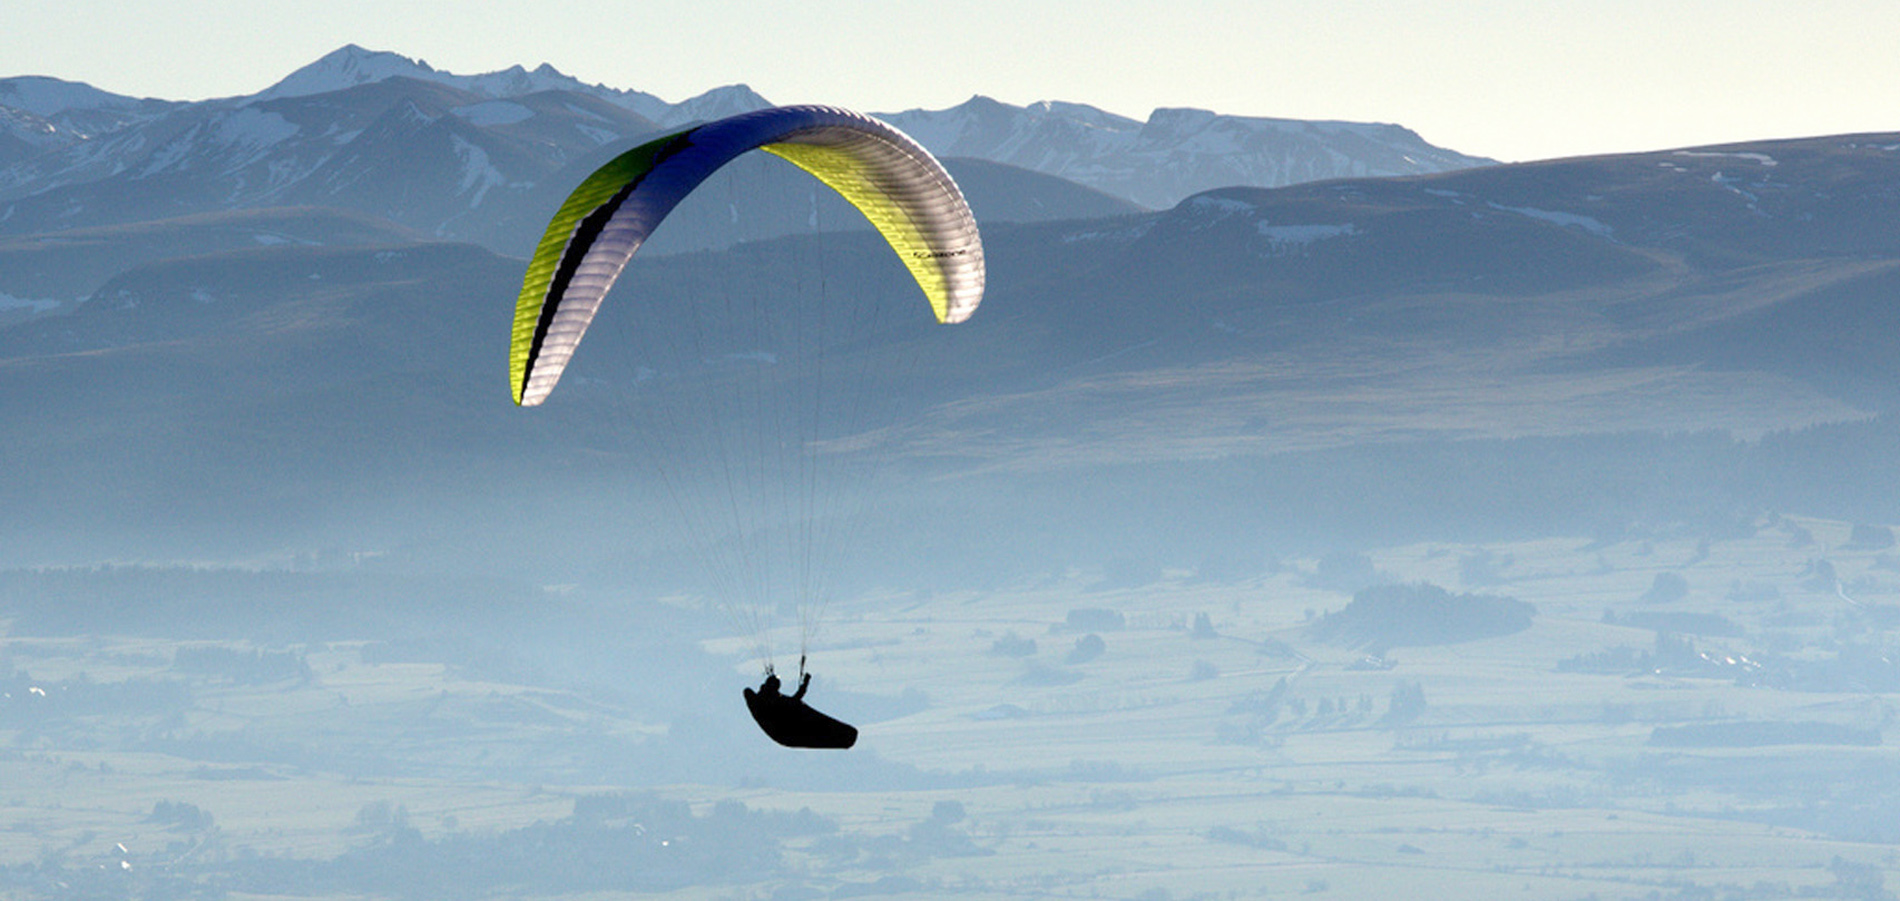 Boutique parapente